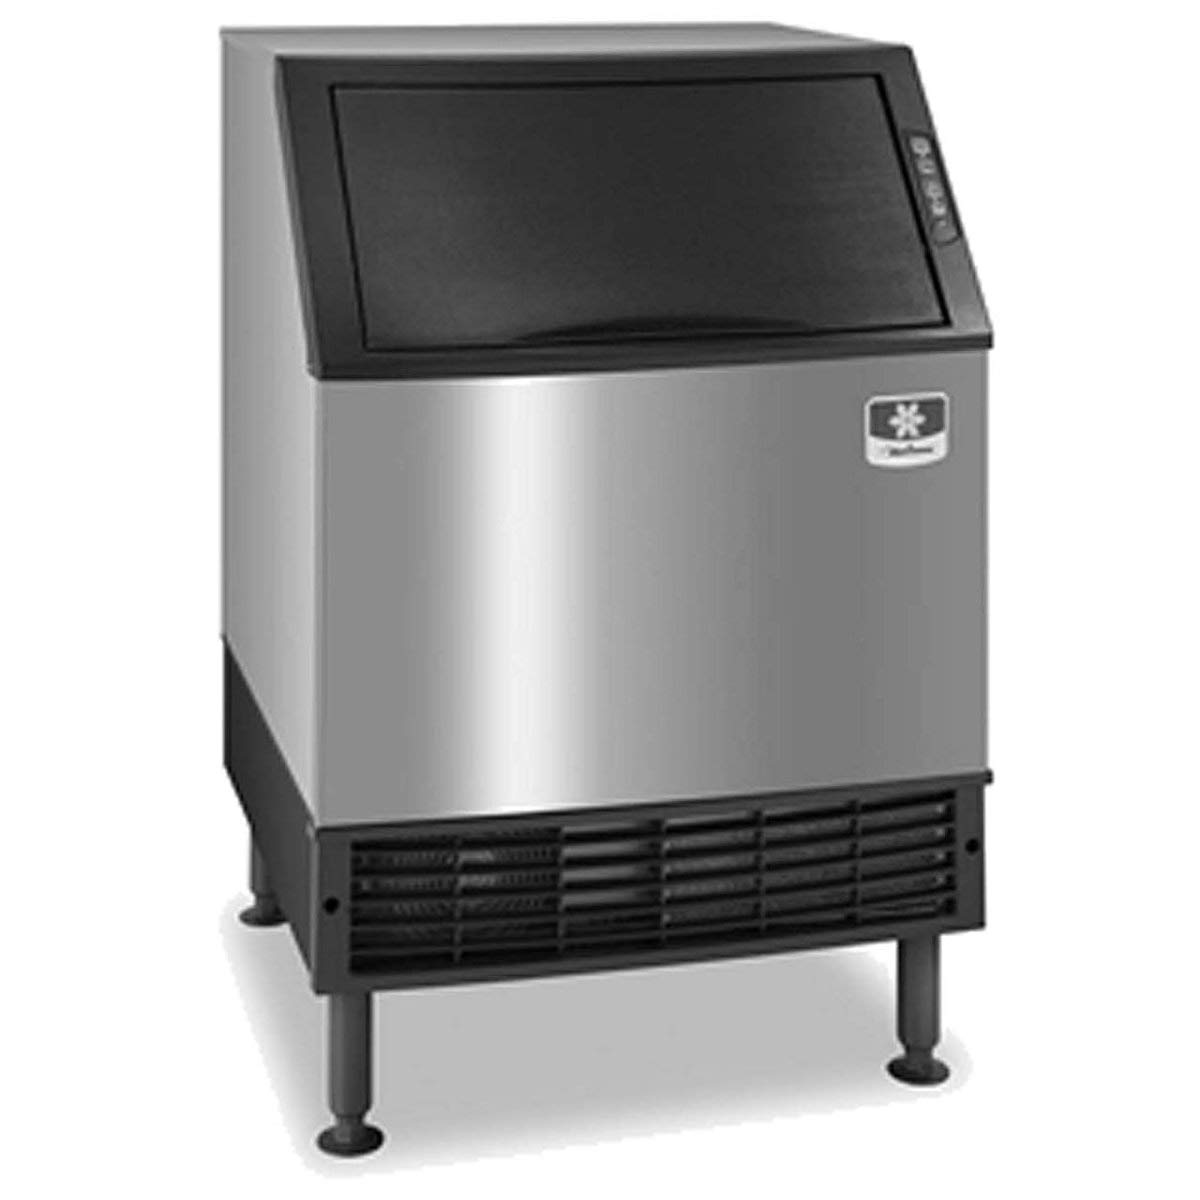 Best under counter ice maker reviews consumer reports